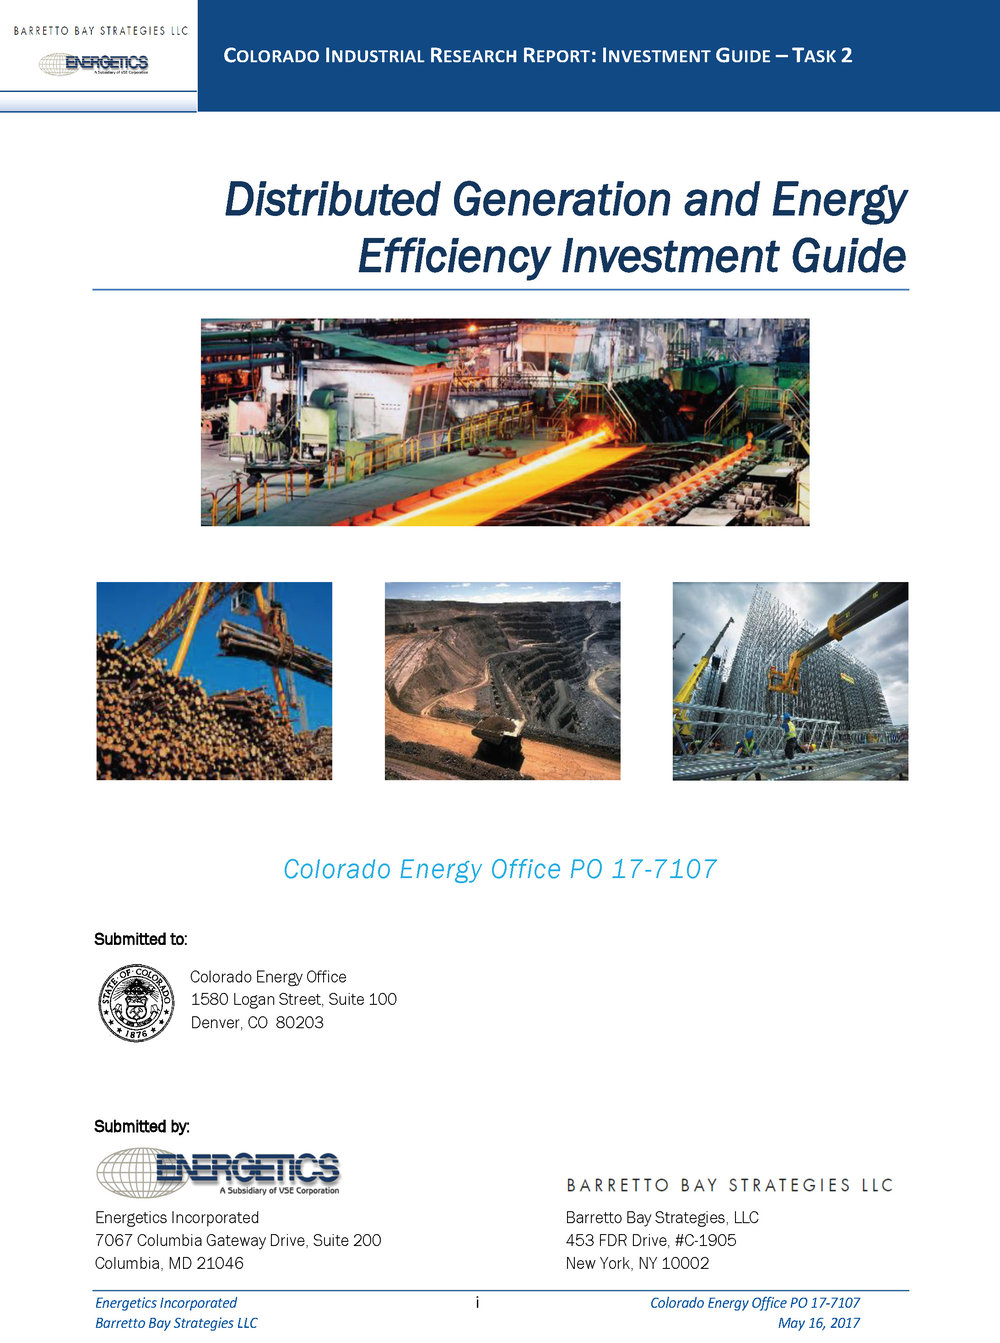 Colorado Energy Office Distributed Energy Investment Guide - 5.16.17.jpg